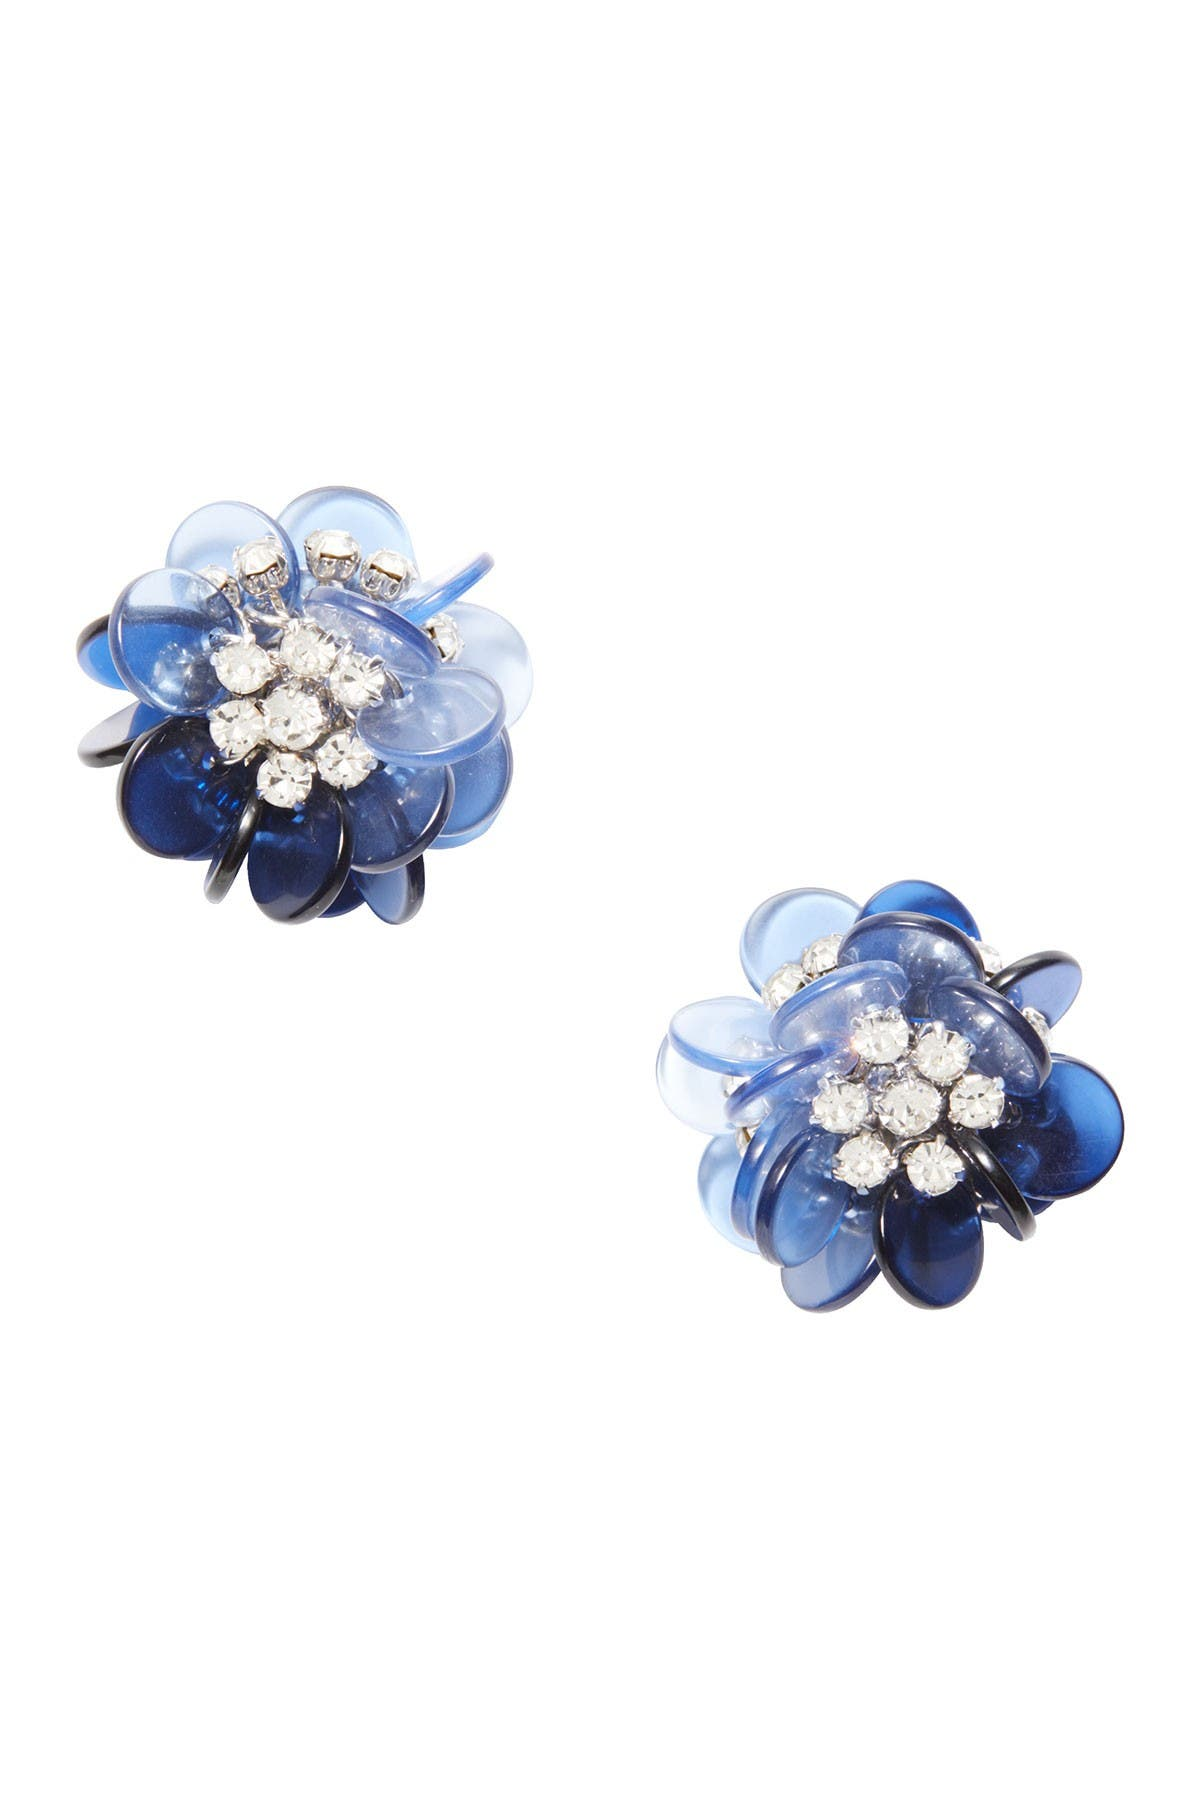 Image of kate spade new york blooming bouquet cz stud earrings